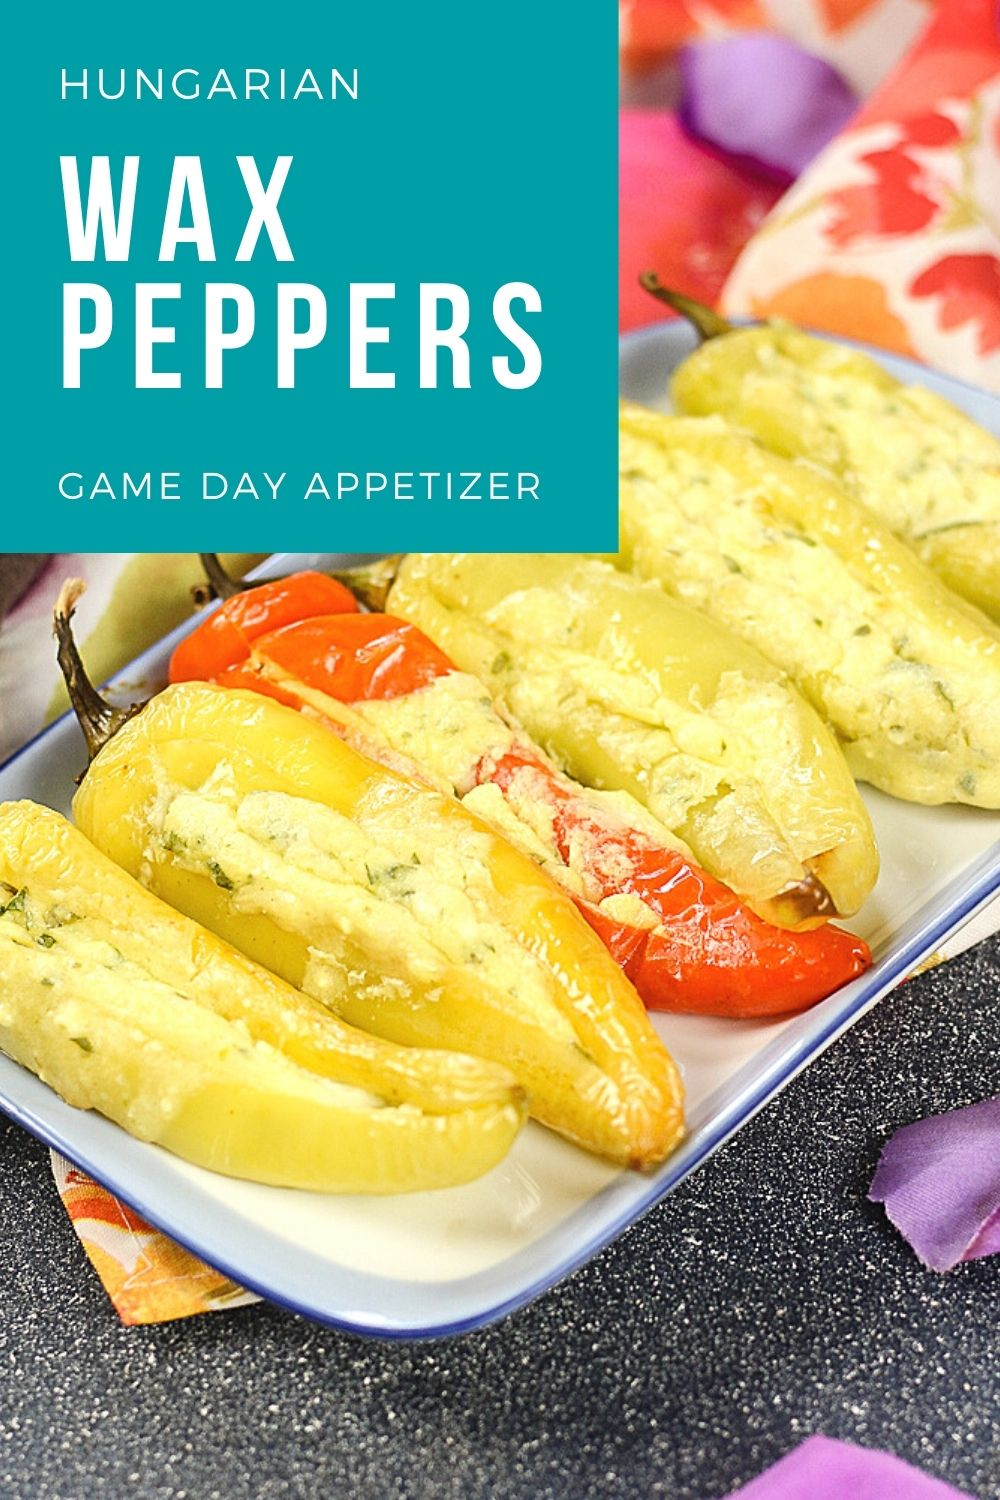 Hungarian Stuffed Peppers with cheese - with text